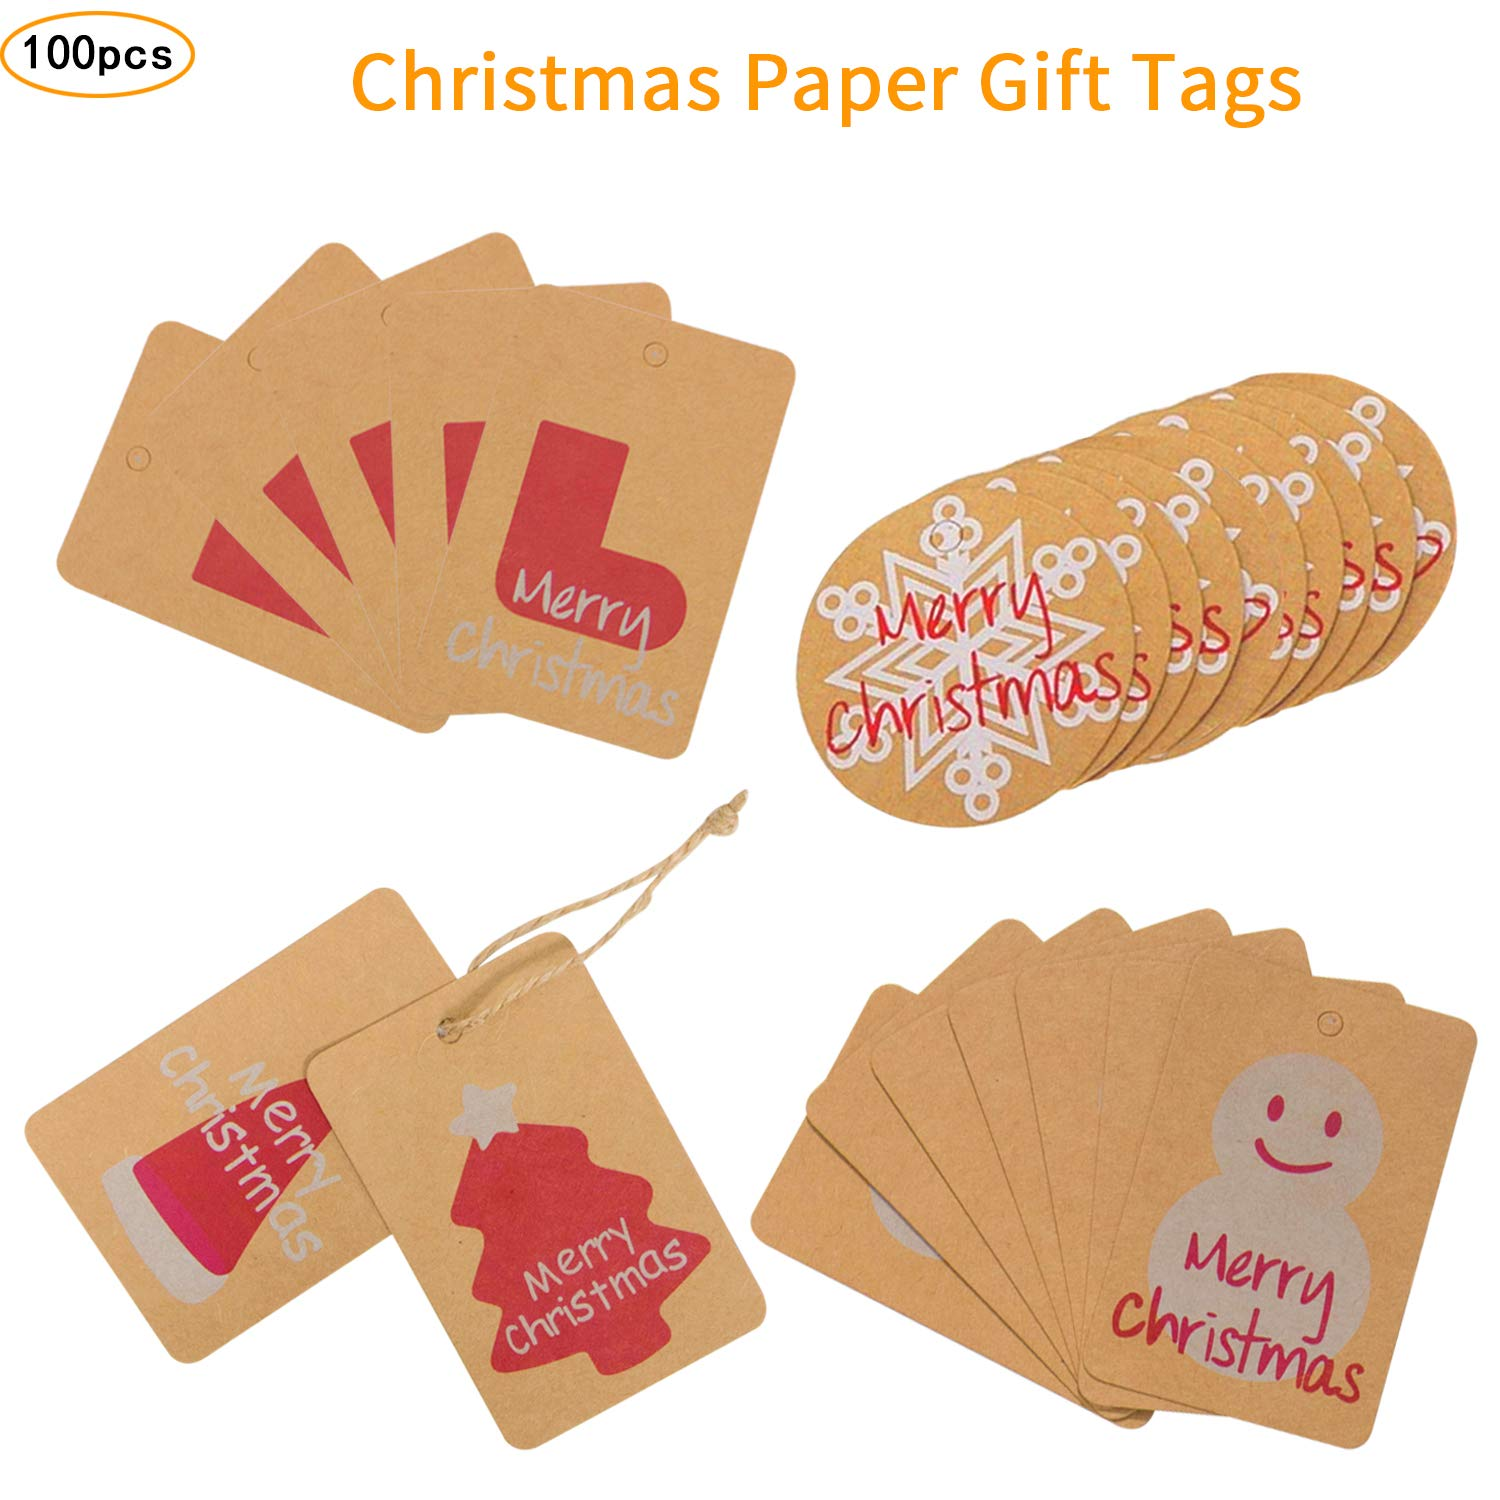 Christmas Gift Tags 100 Pcs,Favor Tags Thank You Gift Tags Place ...